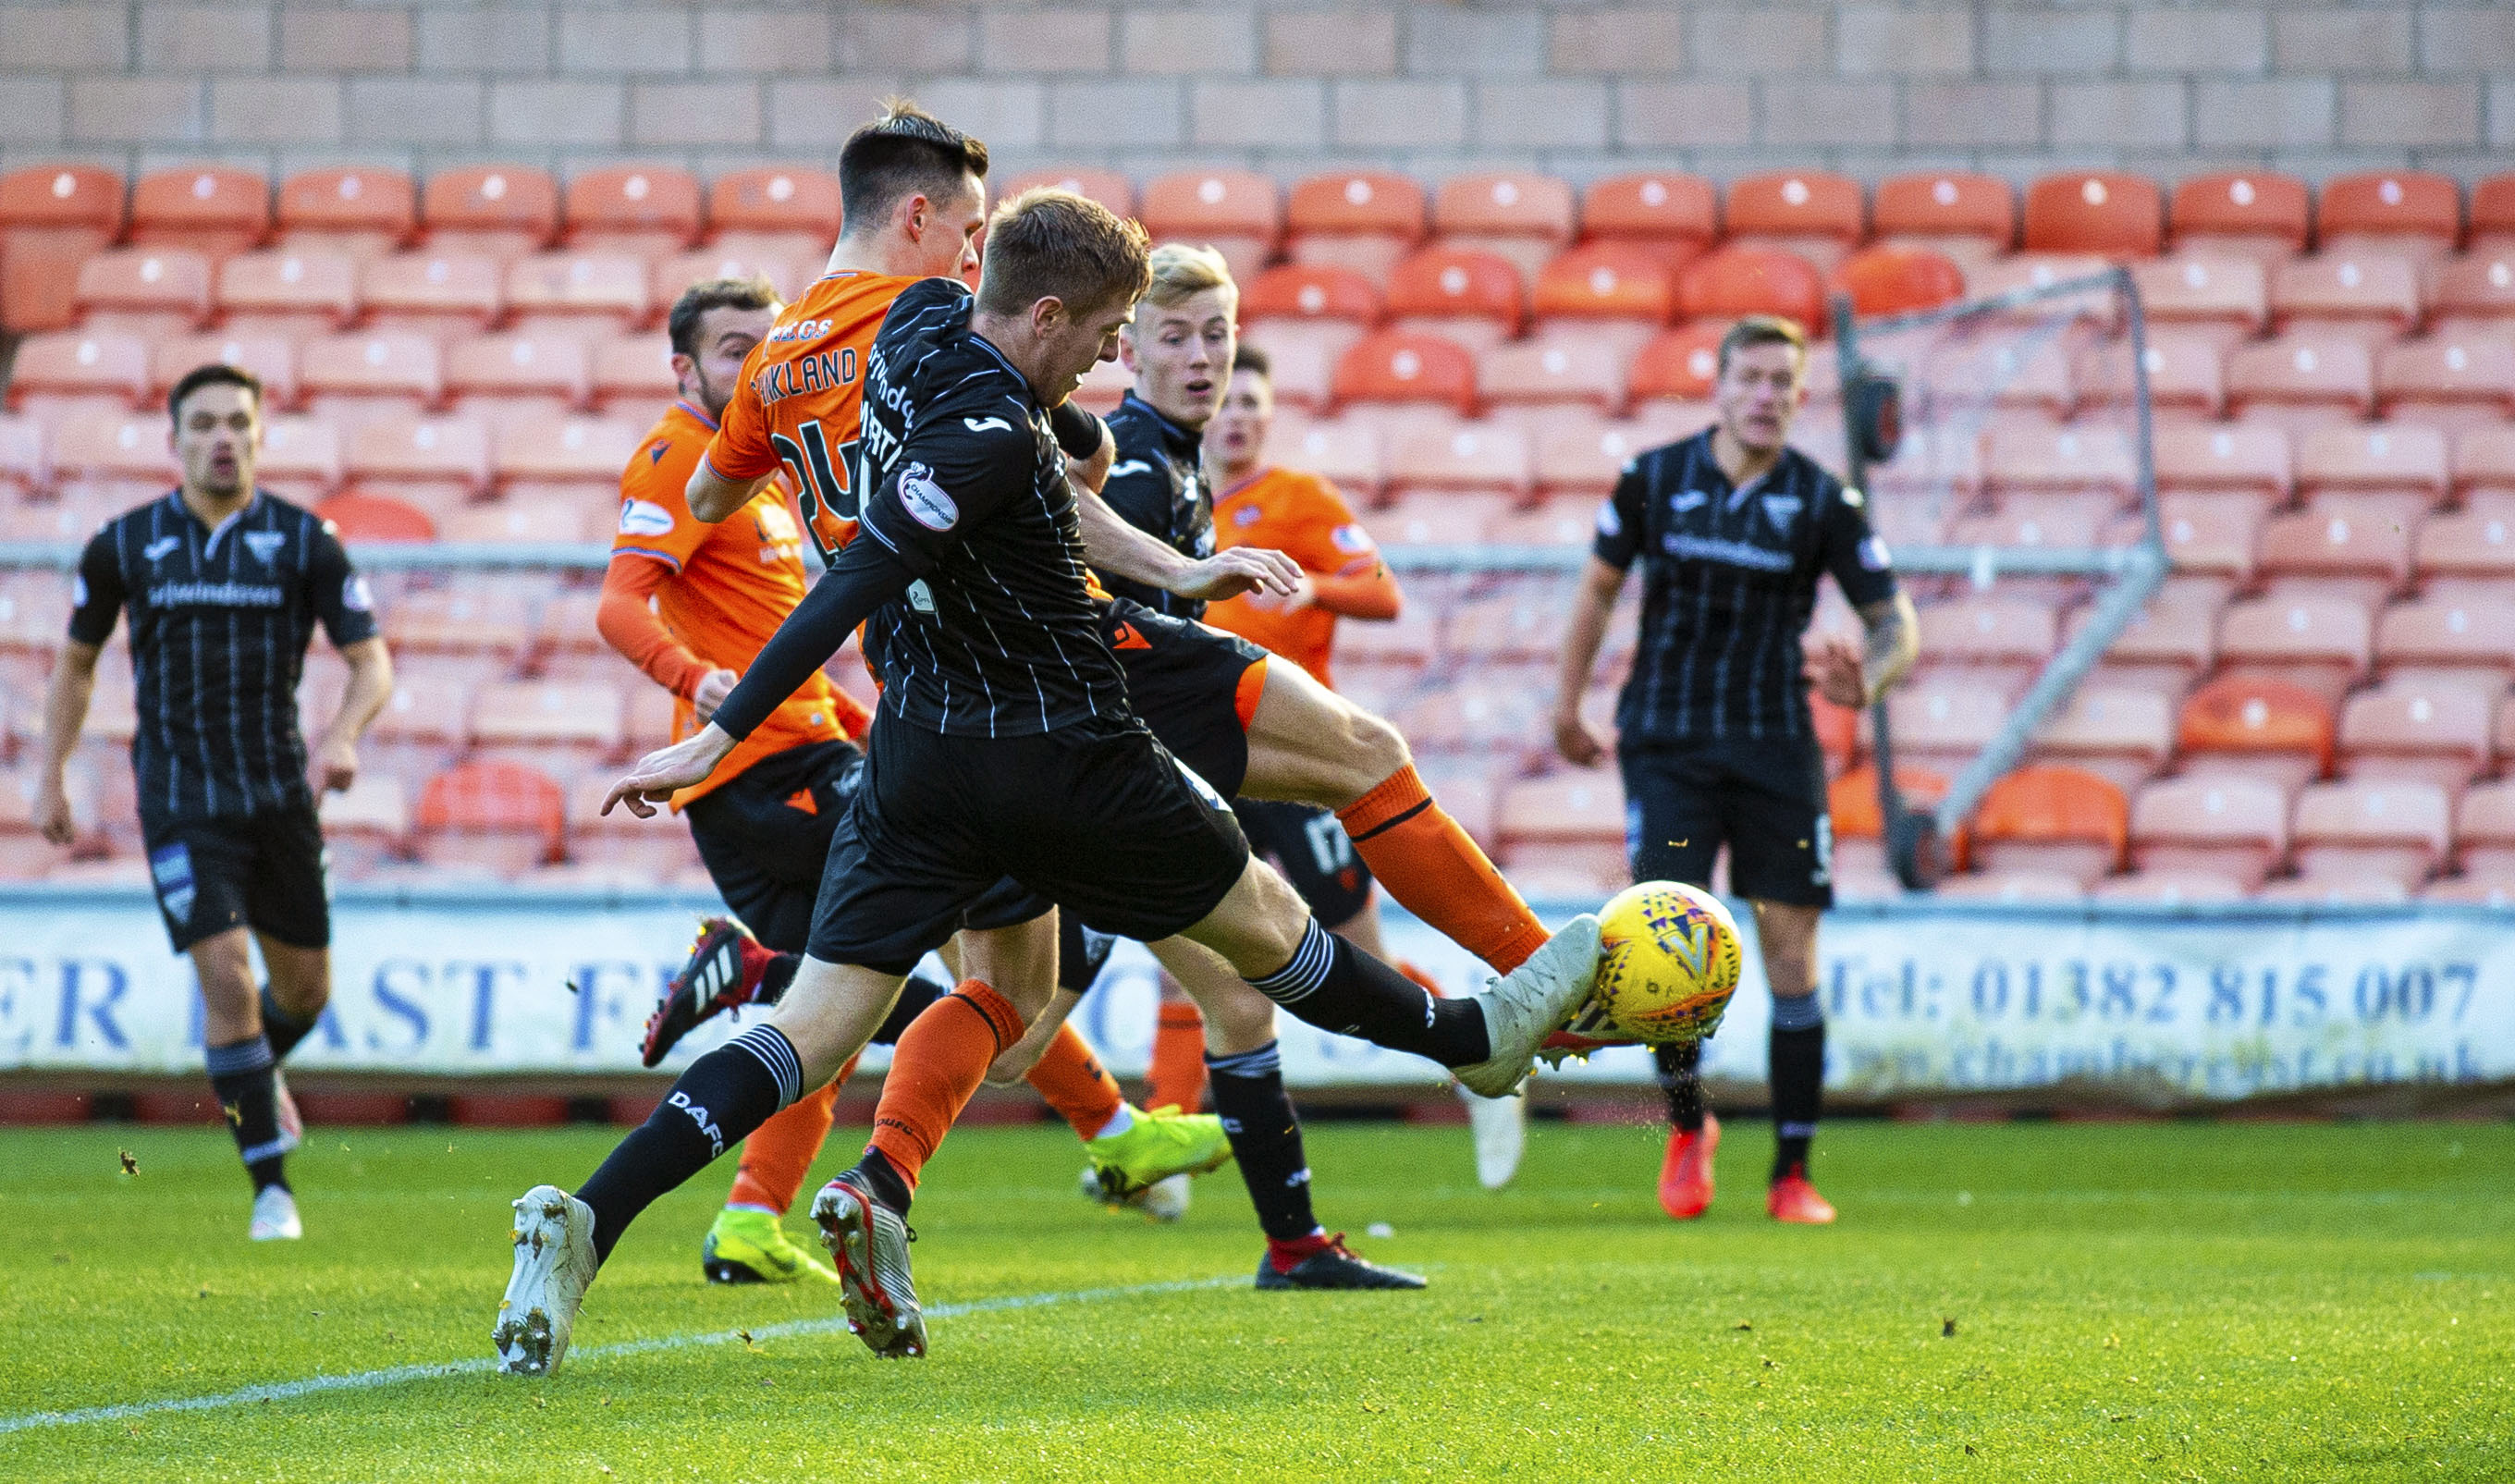 Lawrence Shankland opens the scoring for United.